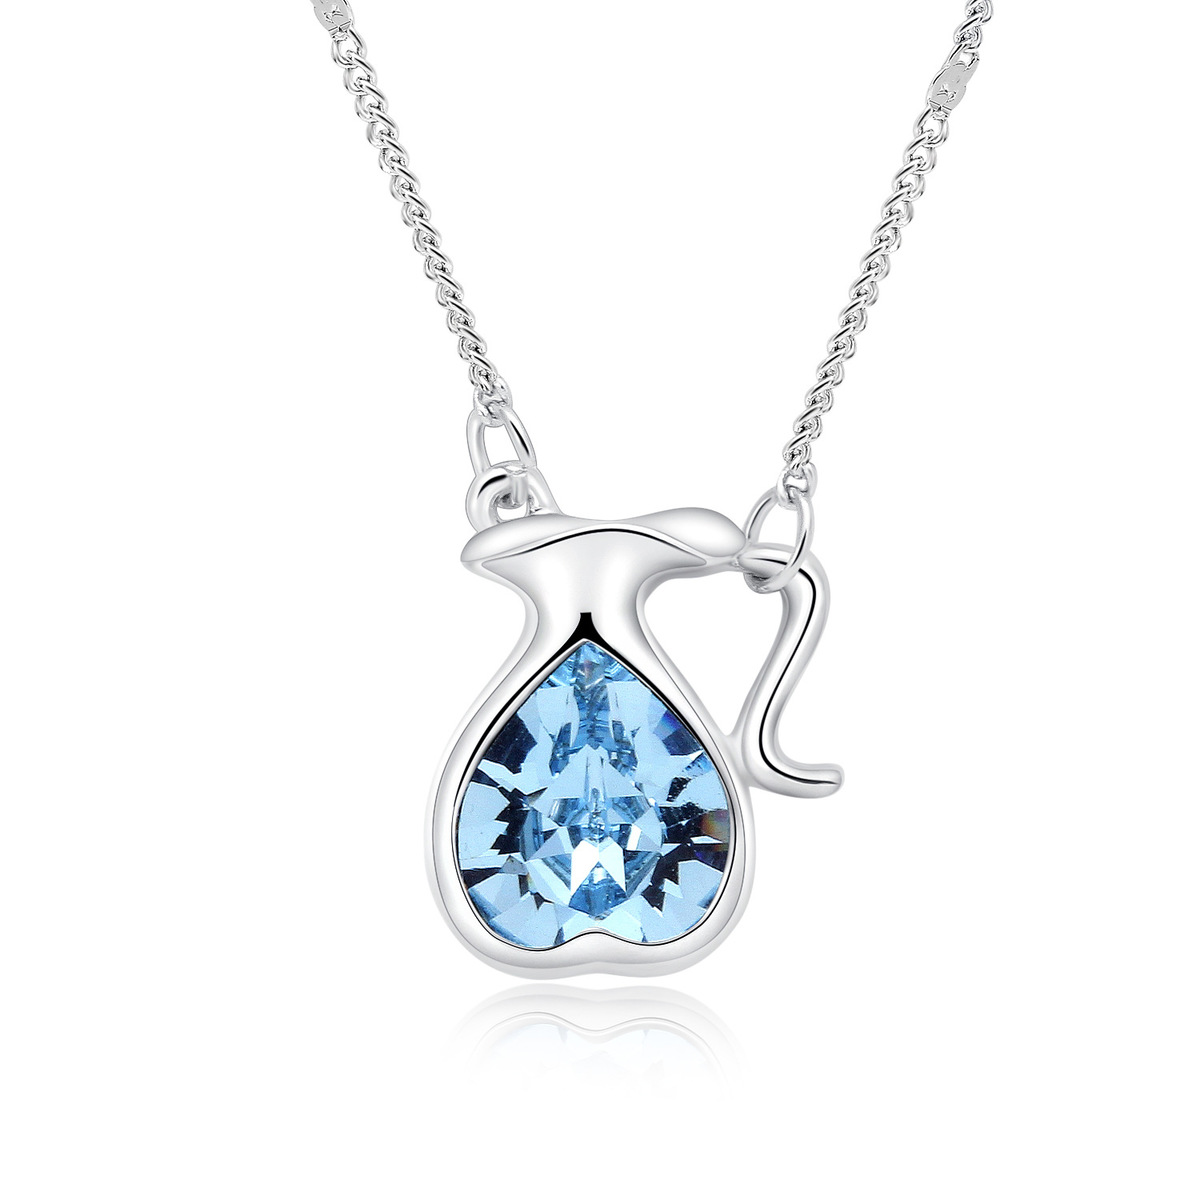 2017 New Twelve Constellation Crystal Necklace High End